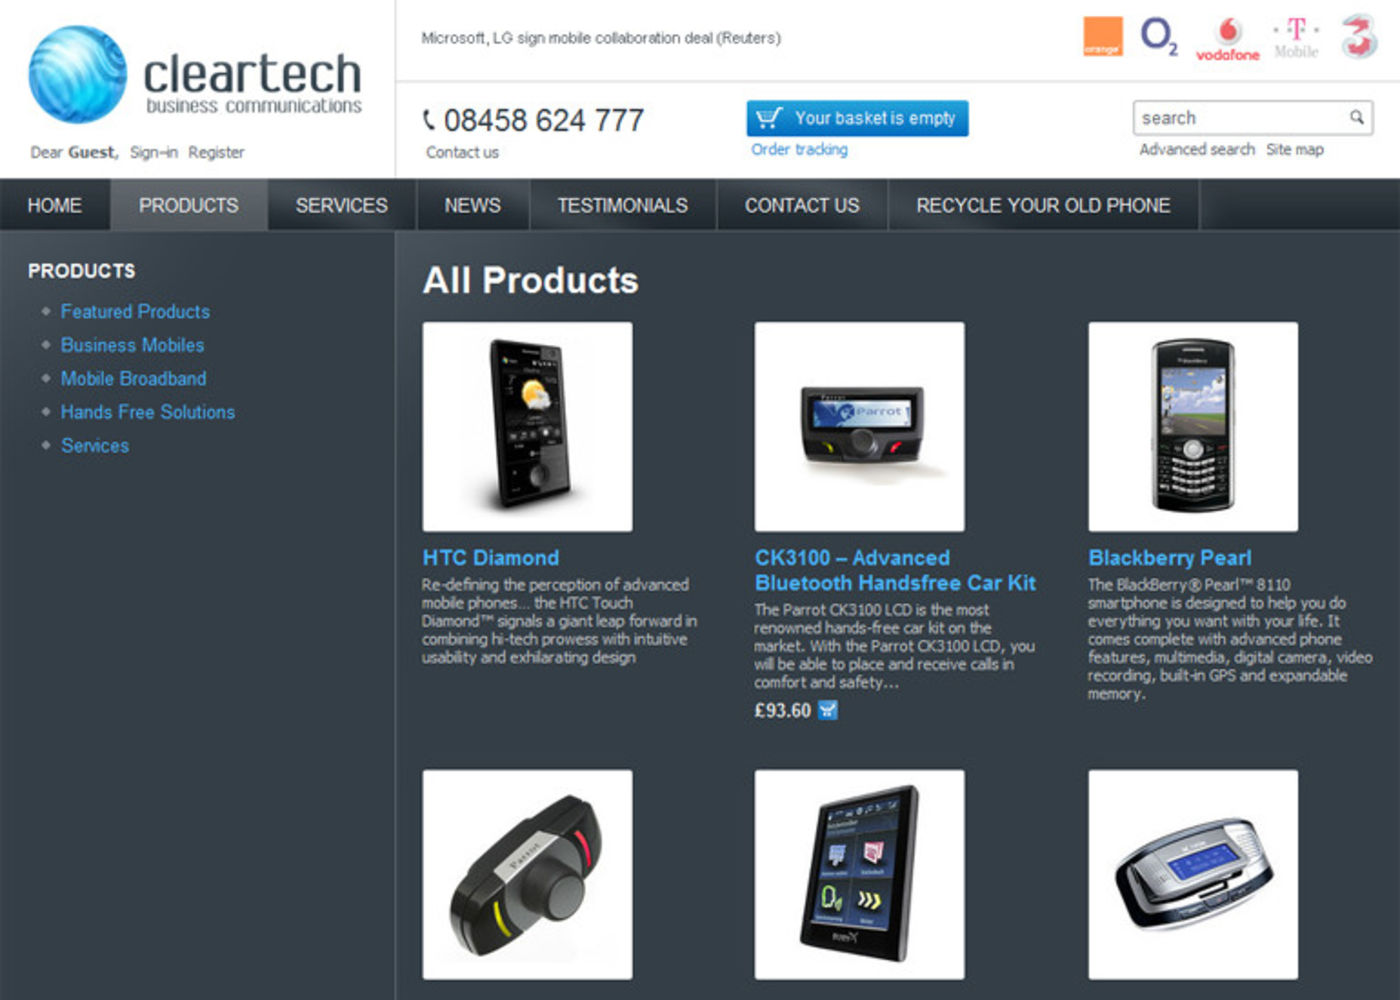 Cleartech Business Communications Products